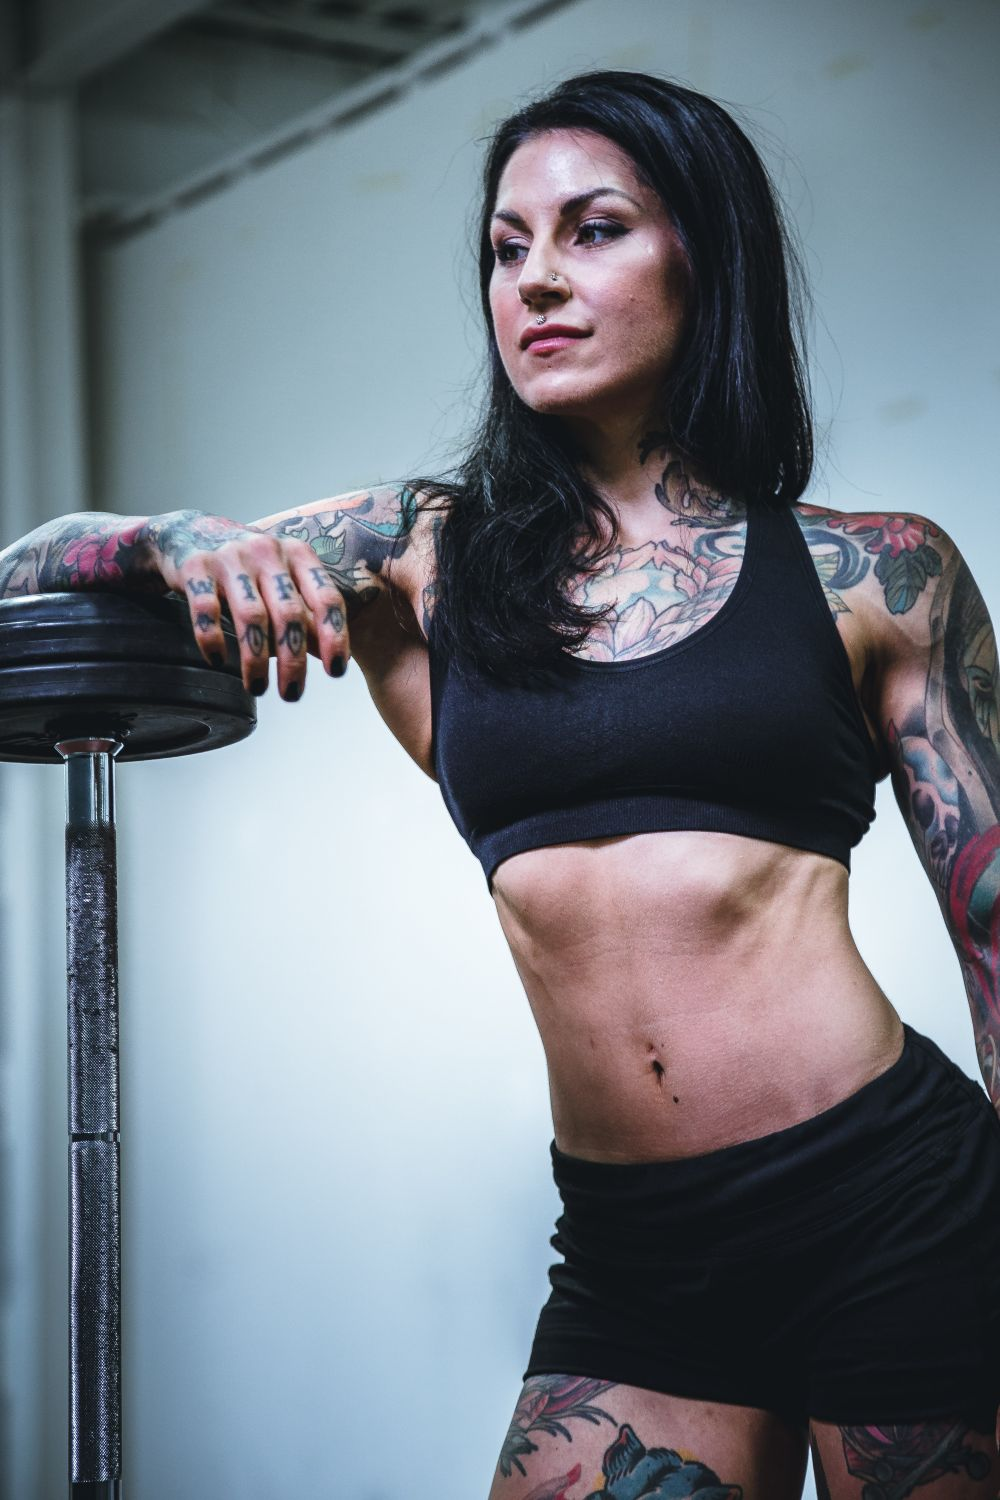 tattooed gym girl